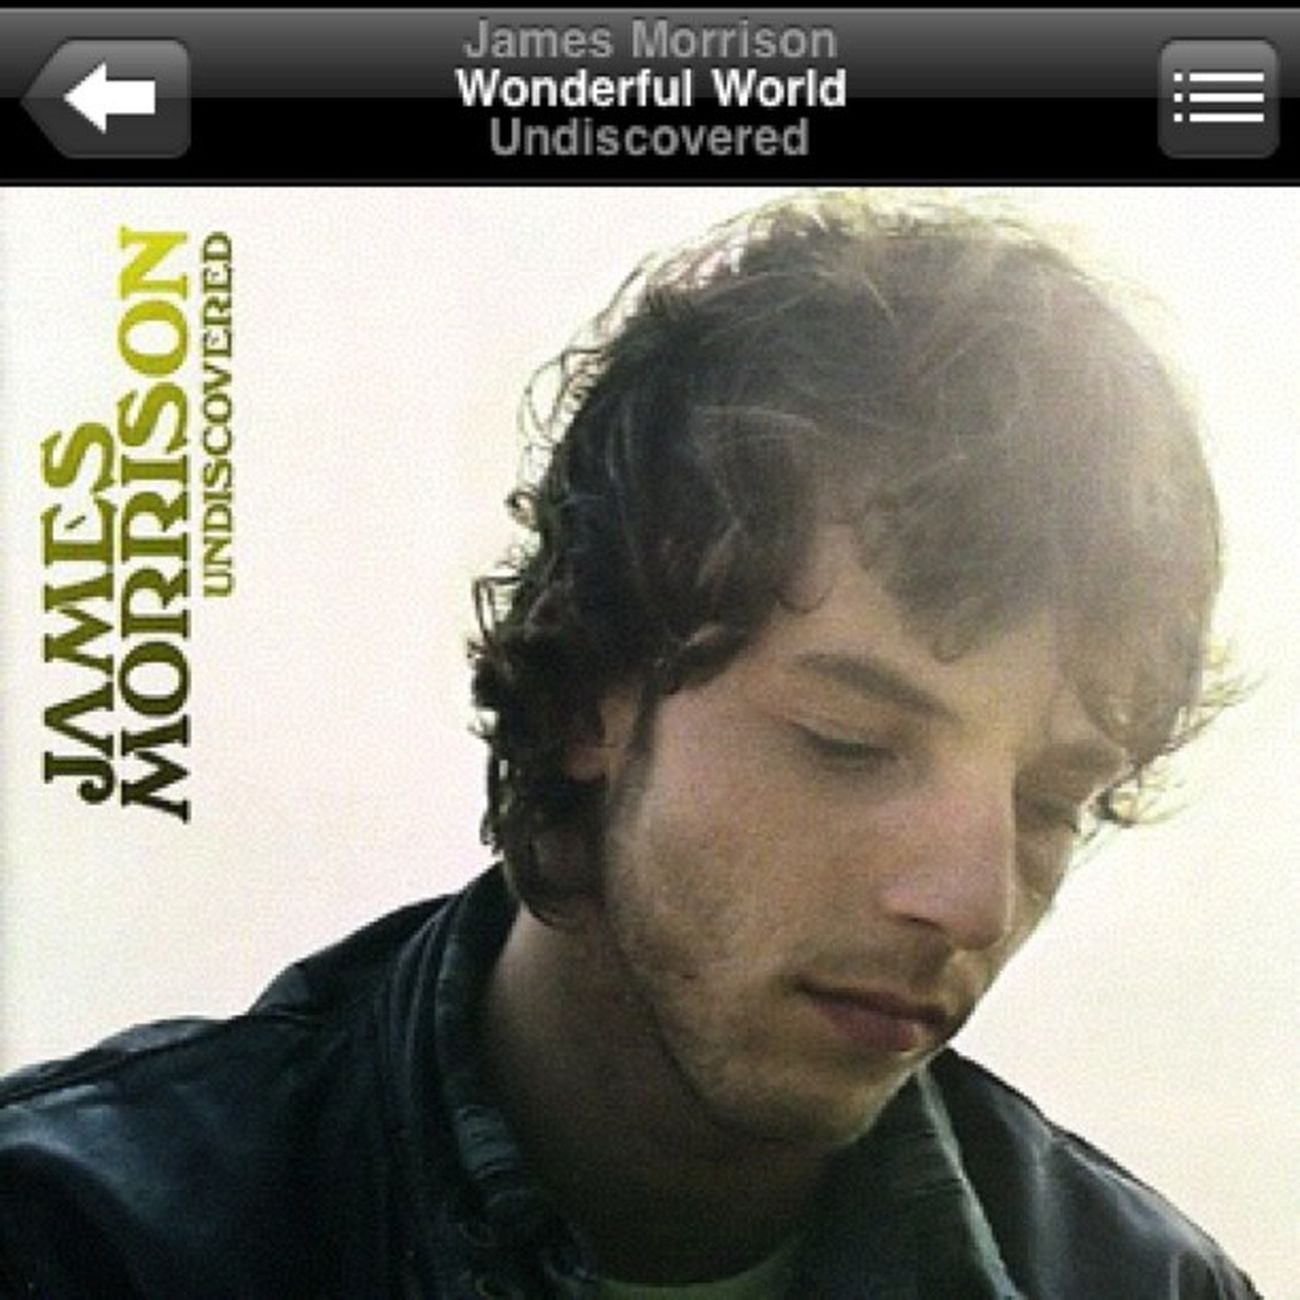 Listening to James Morrison on a rainy afternoon. Jamesmorrison Wonderfulworld Lss Rainyafternoonplaylist